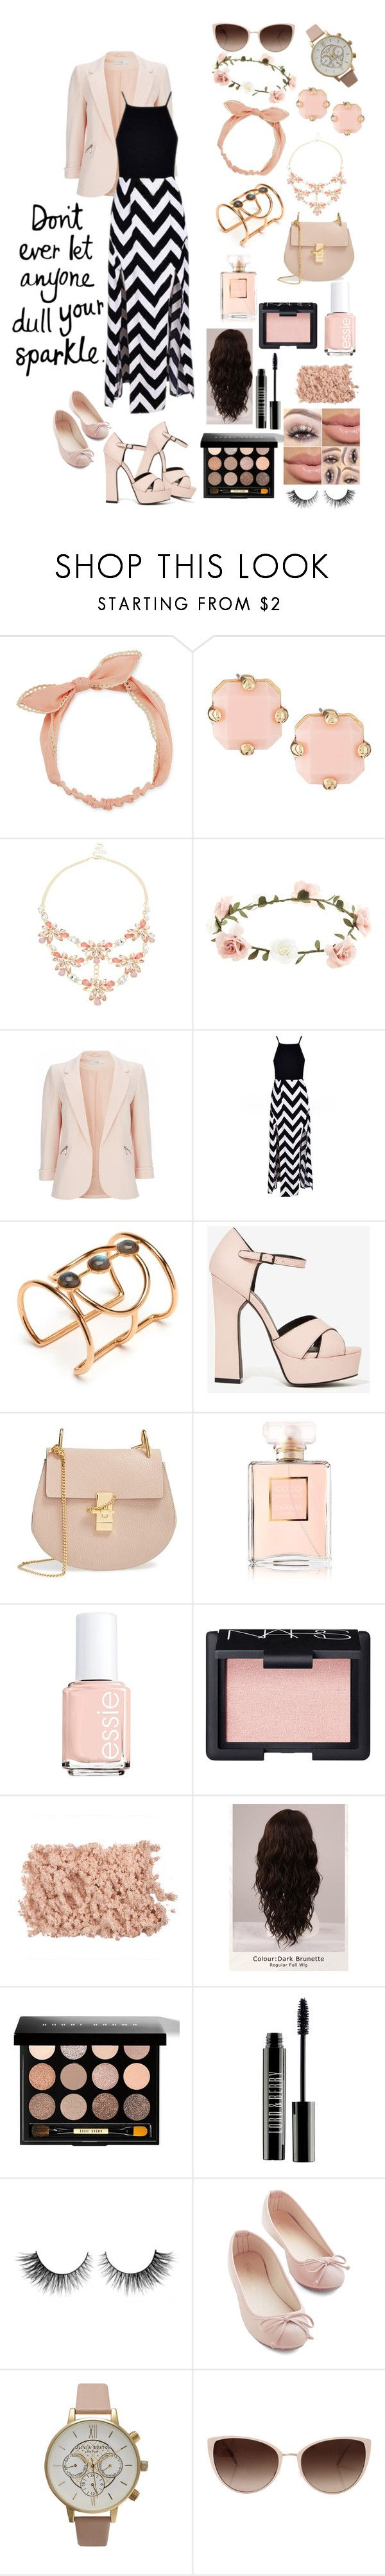 """""""Everything's Peachy(2)"""" by whitecrystxl ❤ liked on Polyvore featuring Arizona, Panacea, Robert Rose, Accessorize, Wallis, Lizzie Fortunato, Nasty Gal, Chloé, Chanel and Essie"""